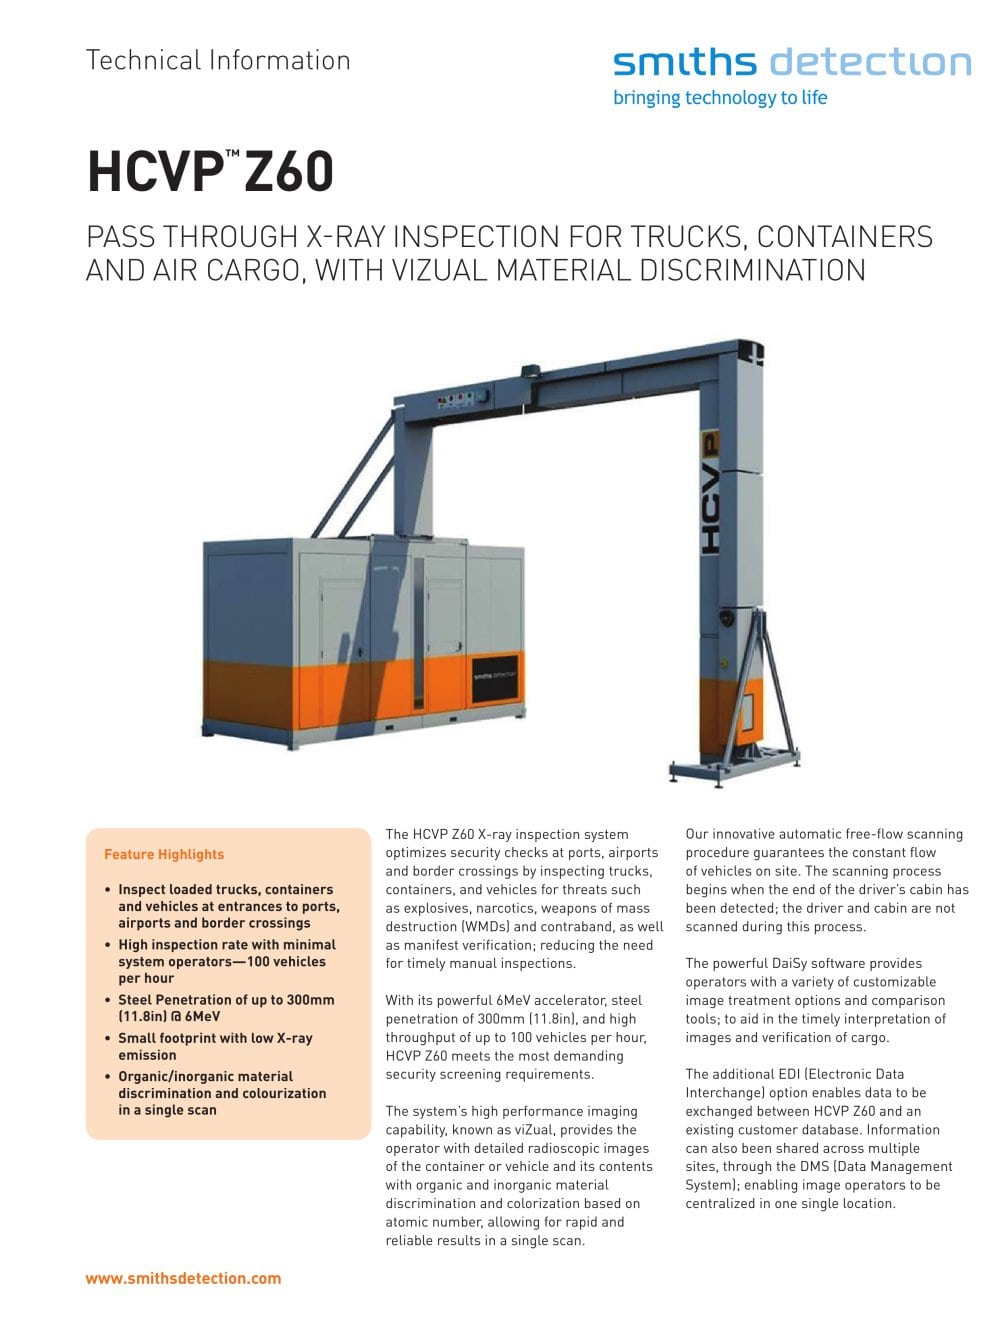 Hcvpz60 Smiths Detection Pdf Catalogue Technical There Are 2 Diagrams For This Vehicle Since It Has Options 1 Pages Add To Myaeroexpo Favorites